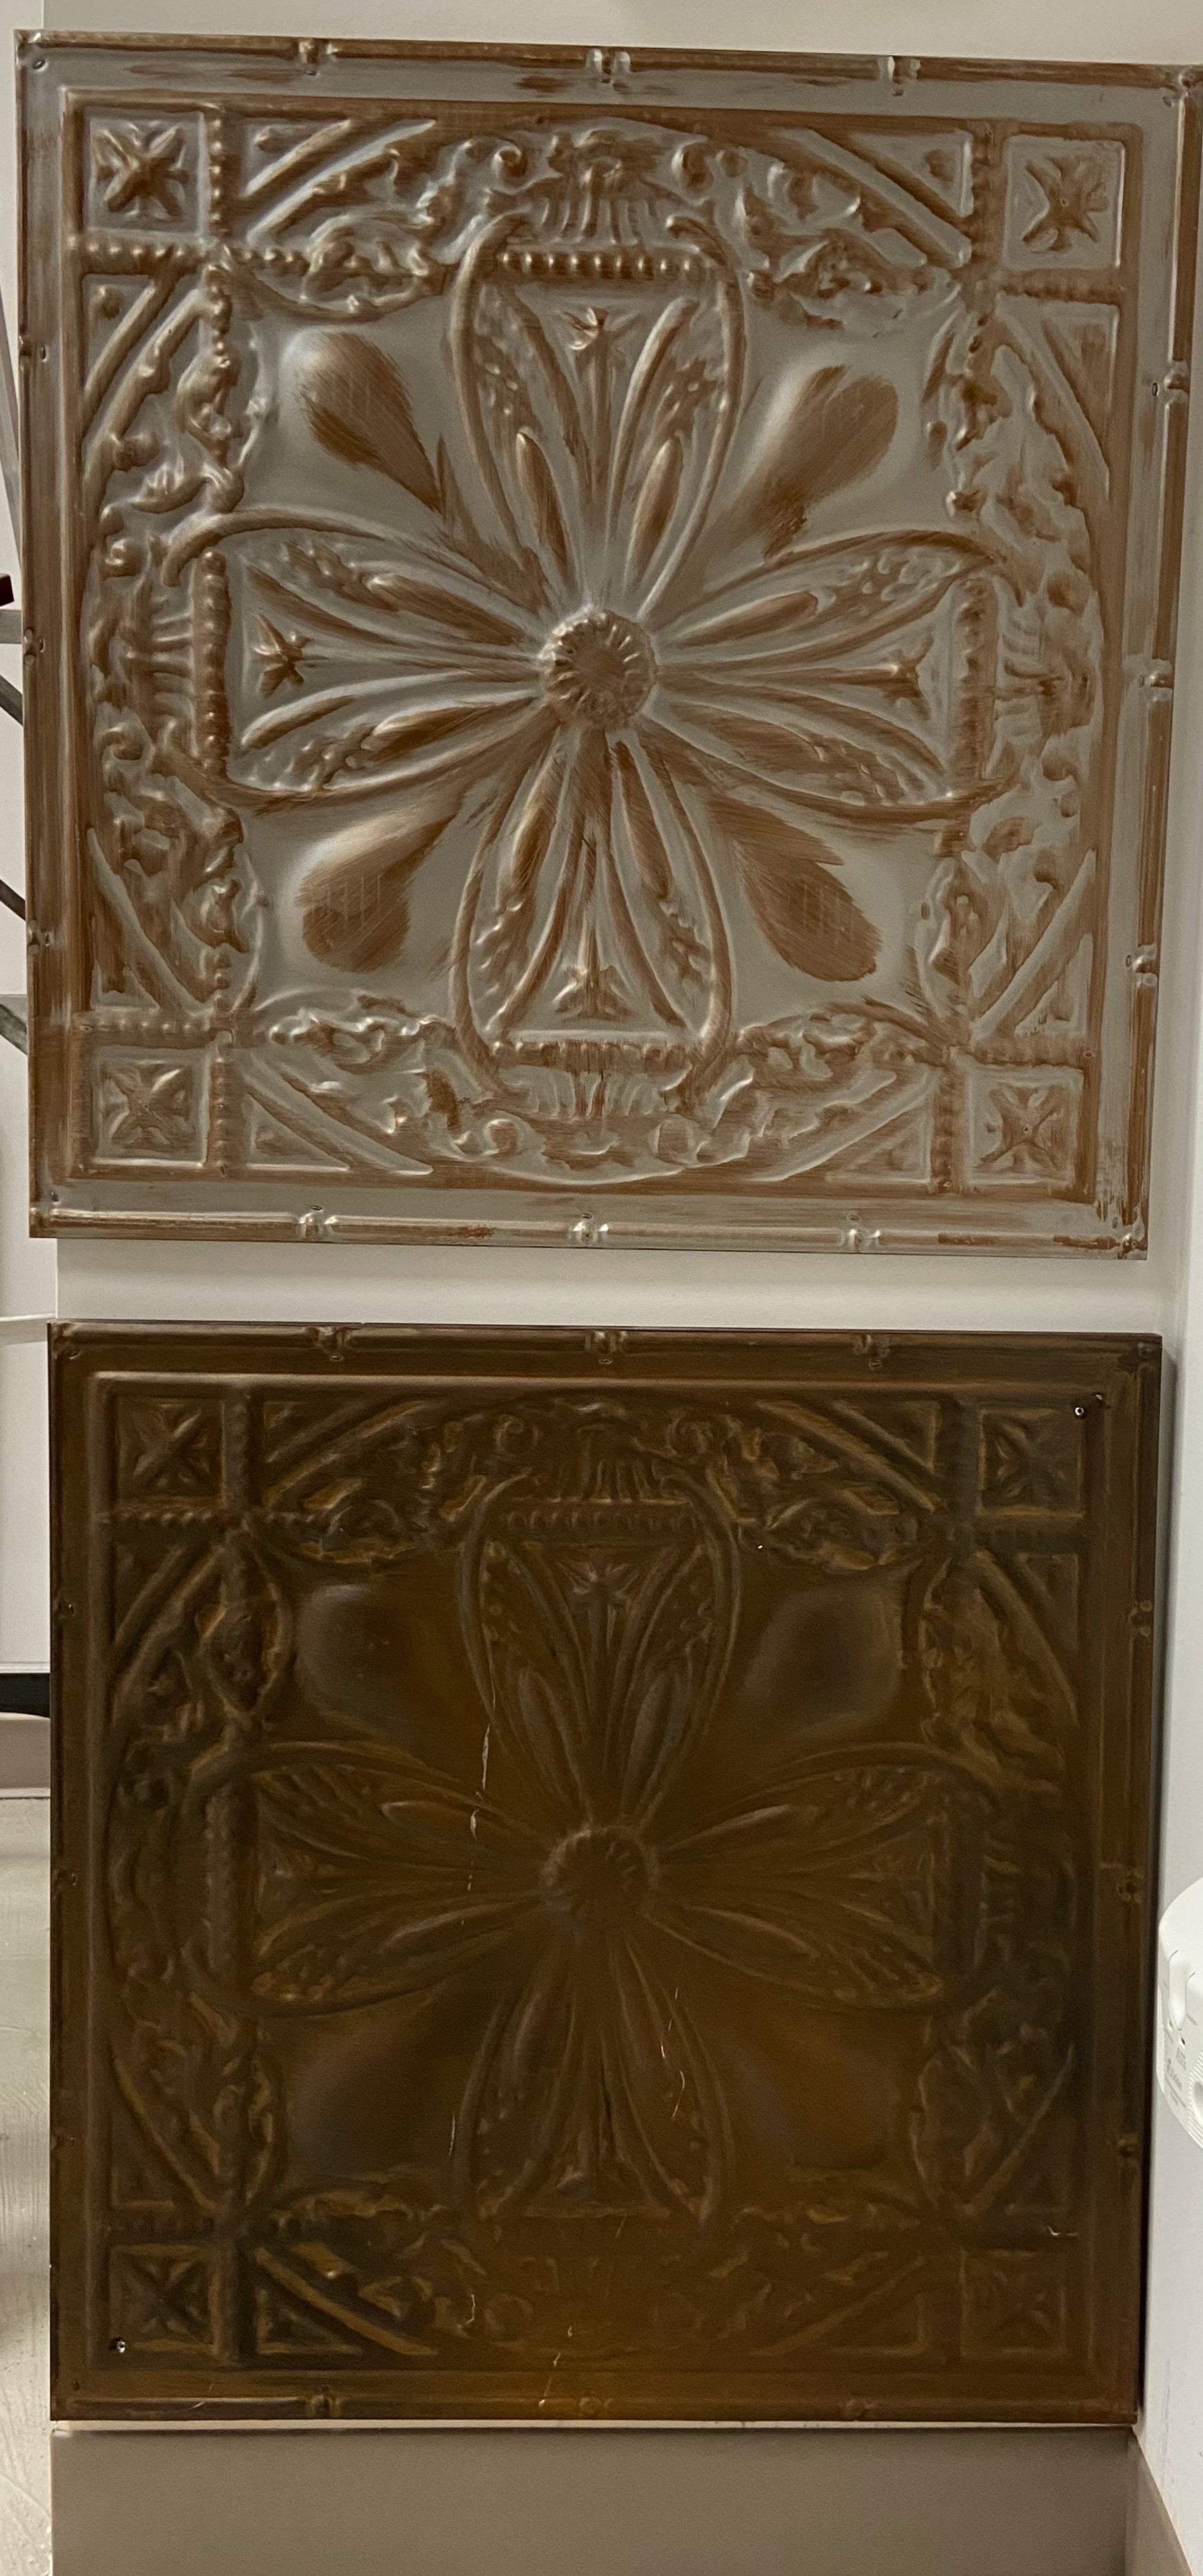 2 Pc. Metal Wall Decor